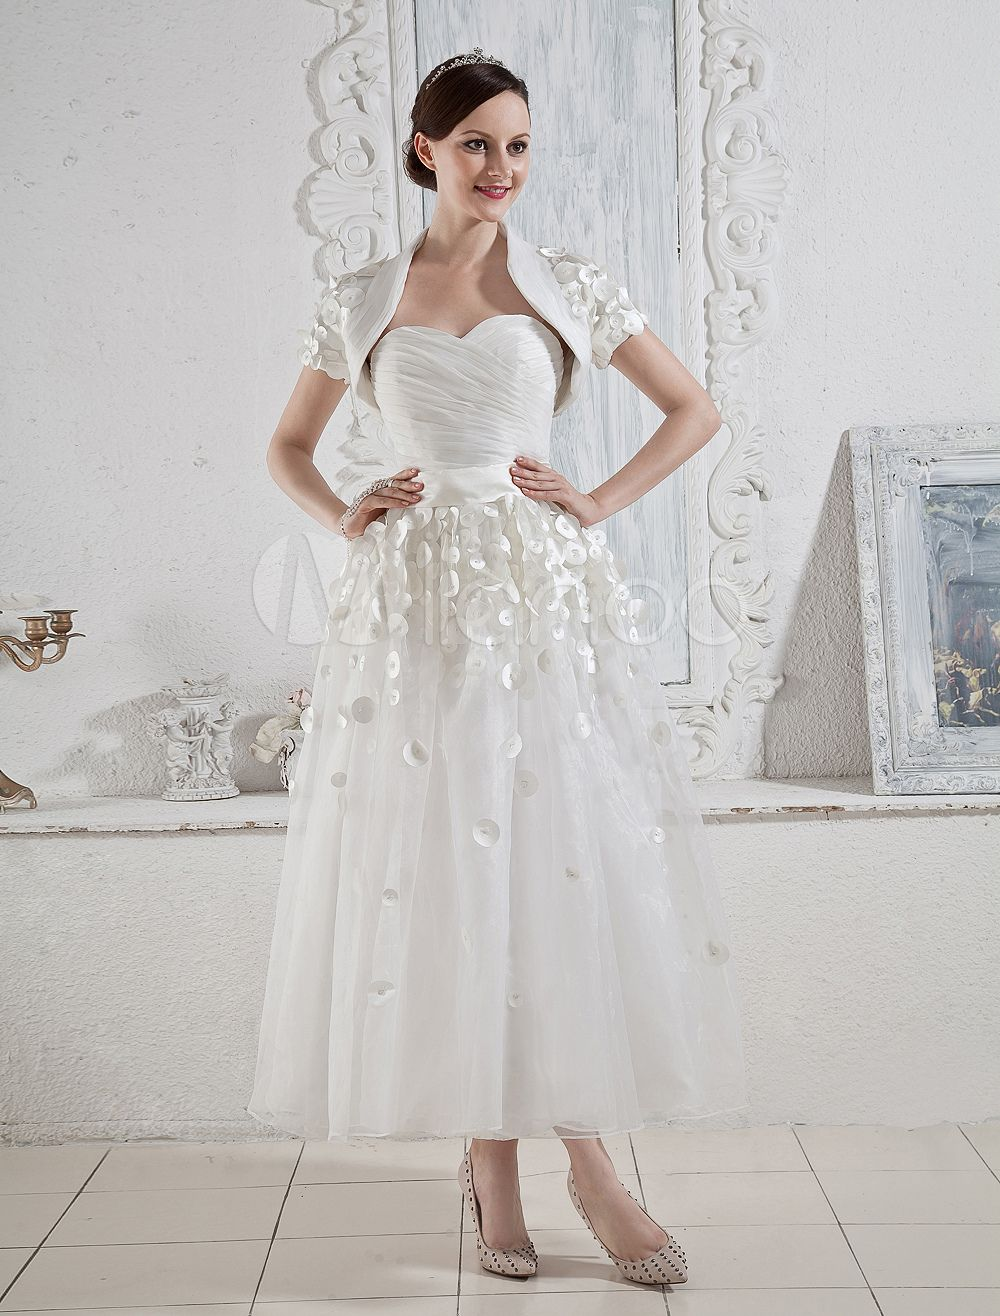 Vintage Inspired Wedding Dress | Tea length wedding dress, 1950s ...